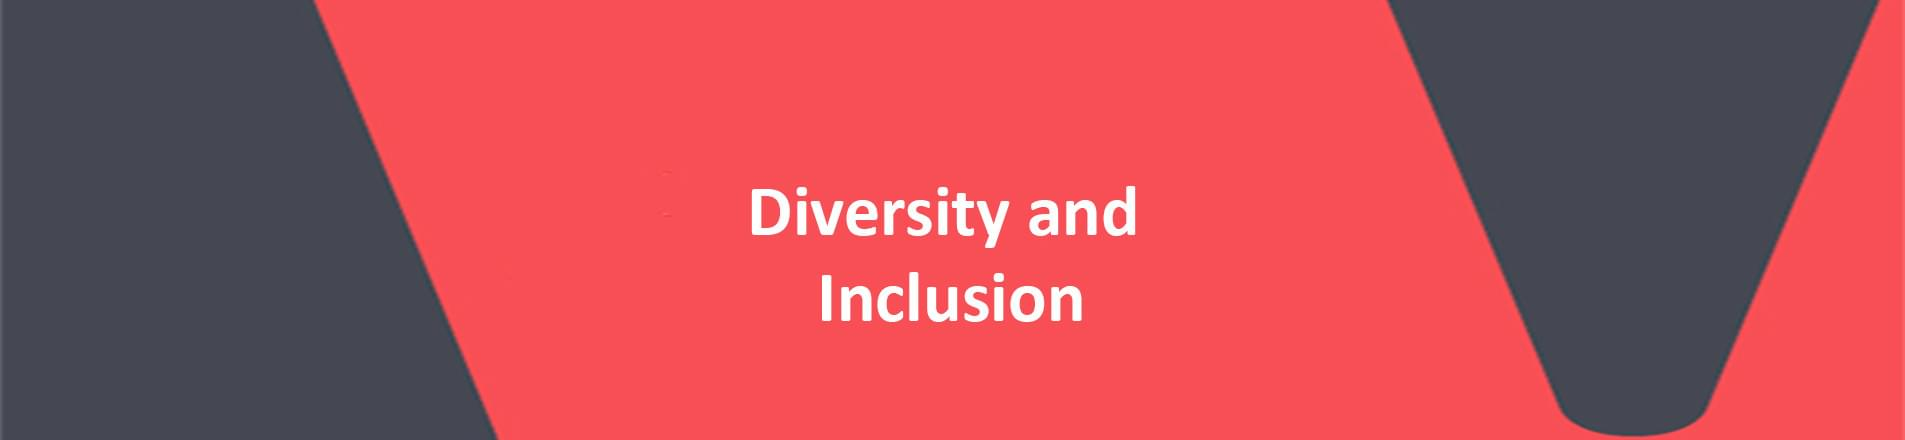 red banner with white text reading diversity and inclusion